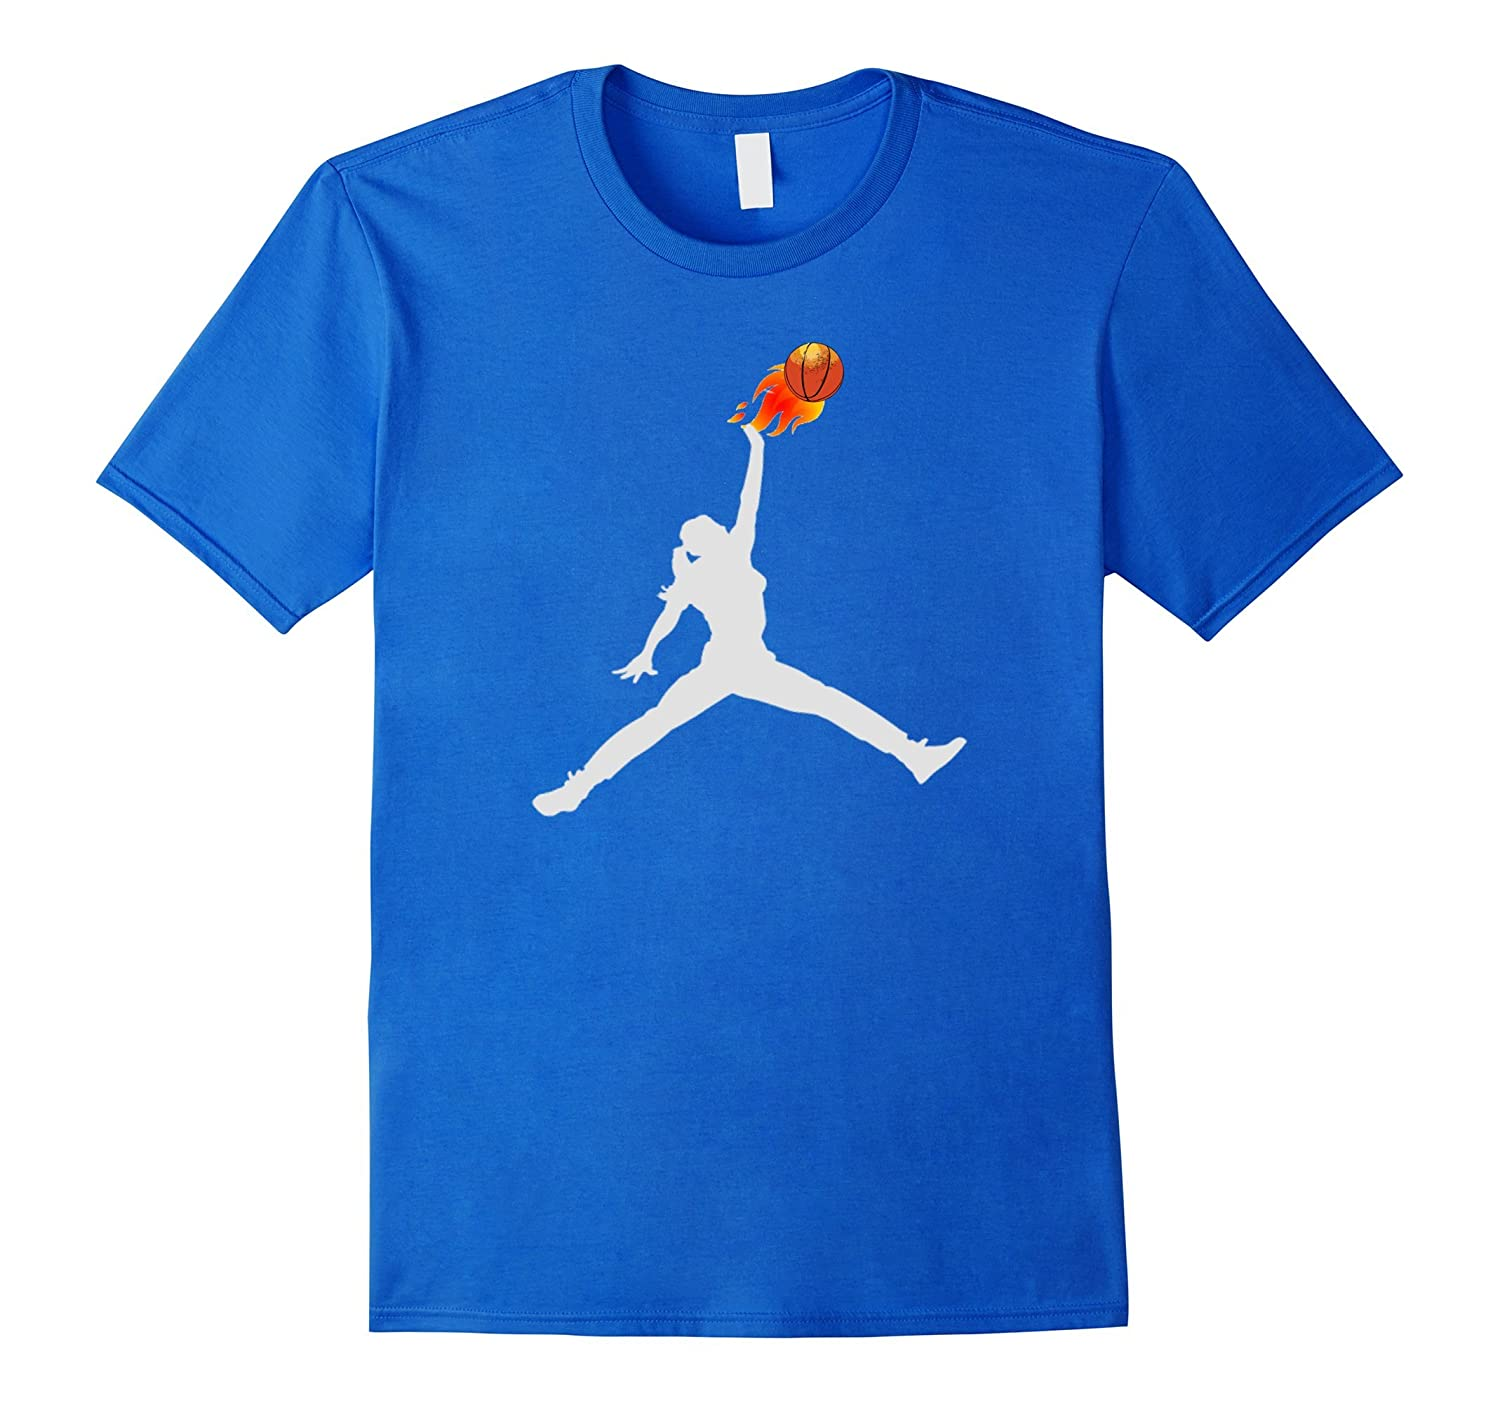 Women's, Girl's Basketball Ball on Fire Tee-Shirt-mt